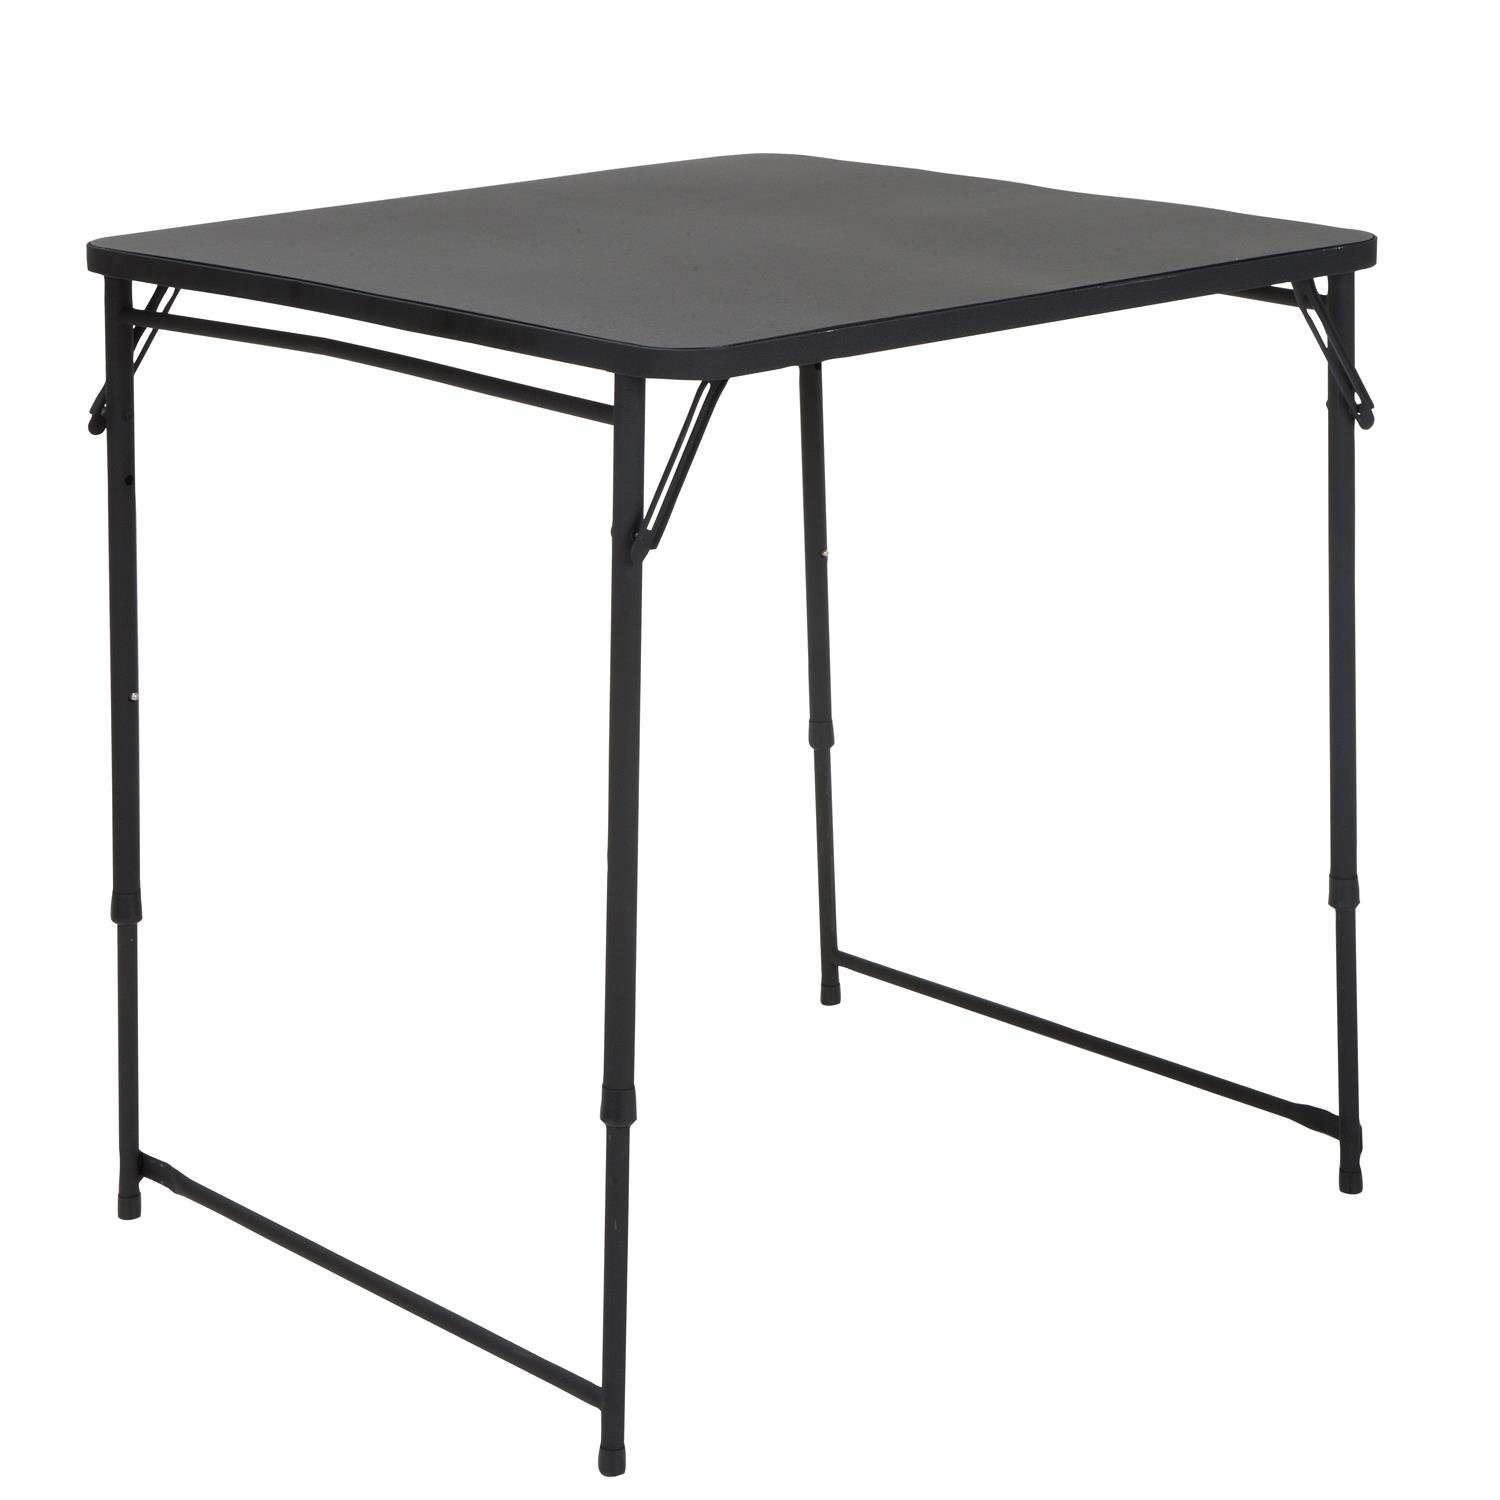 Cosco 34 Square Adjustable Height PVC Top Table, Black